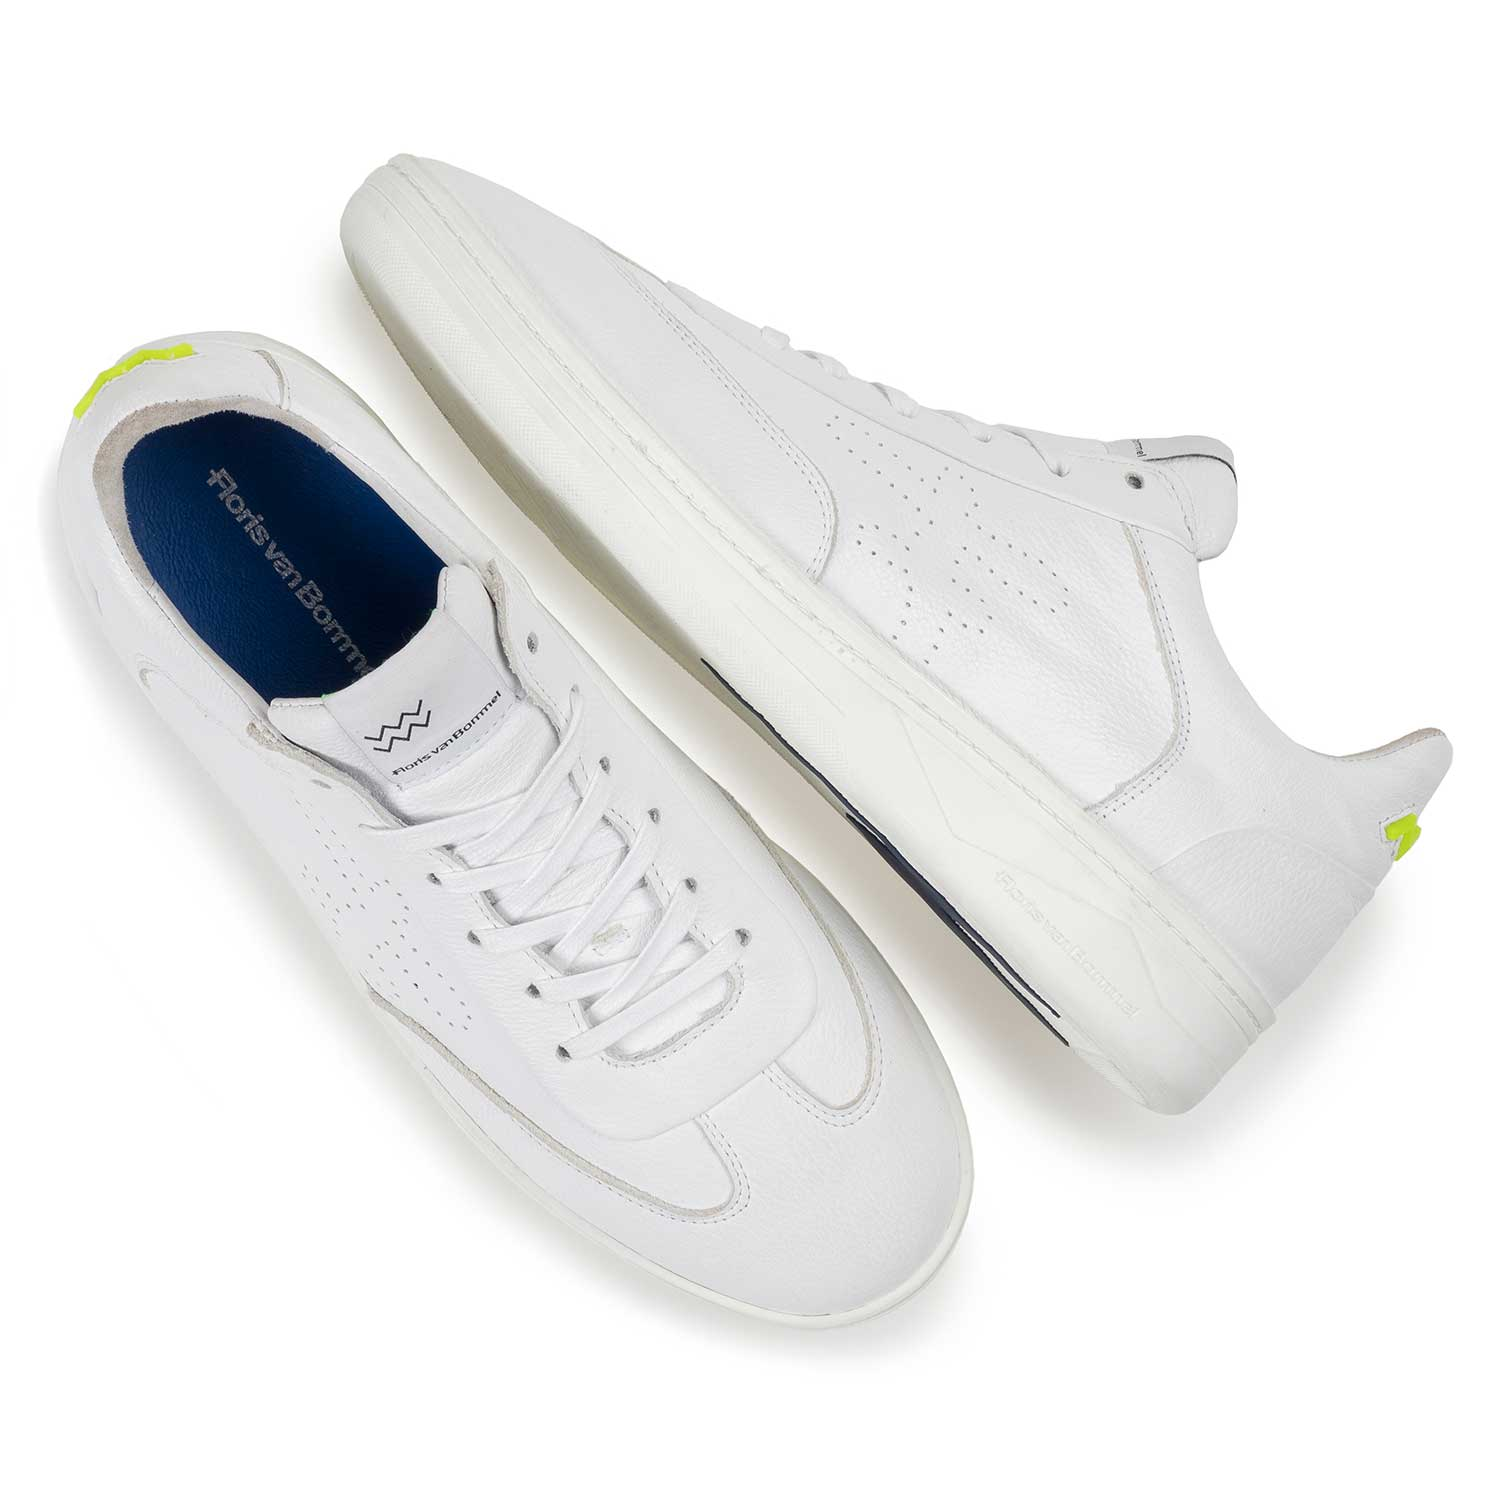 16255/05 - White leather sneaker